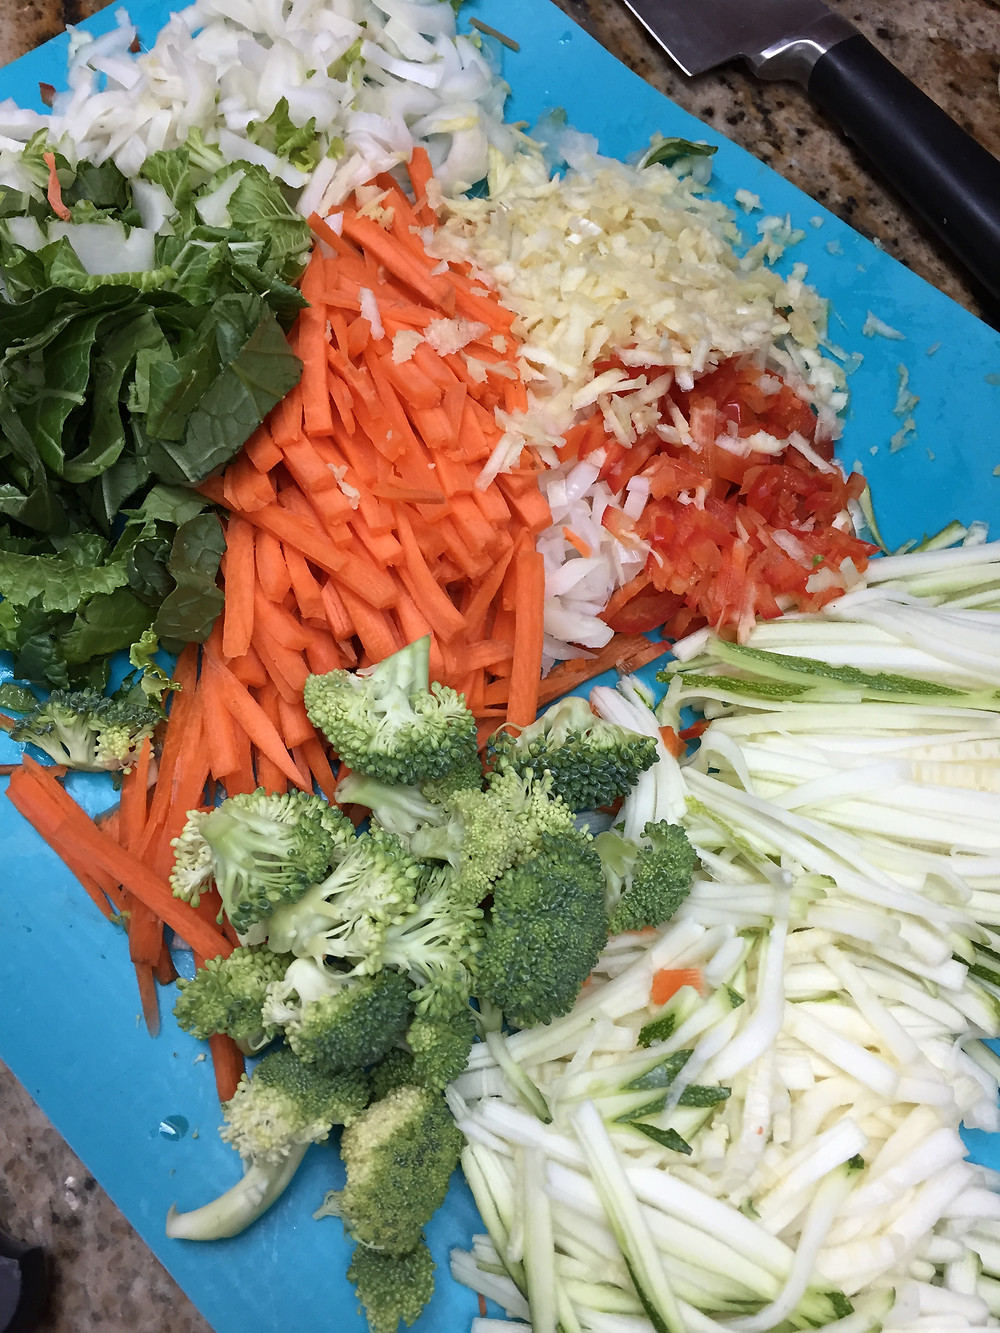 Use a slicer to quickly chop and slice veggies, Vegan Lifestyle Coach Naomi Mannino